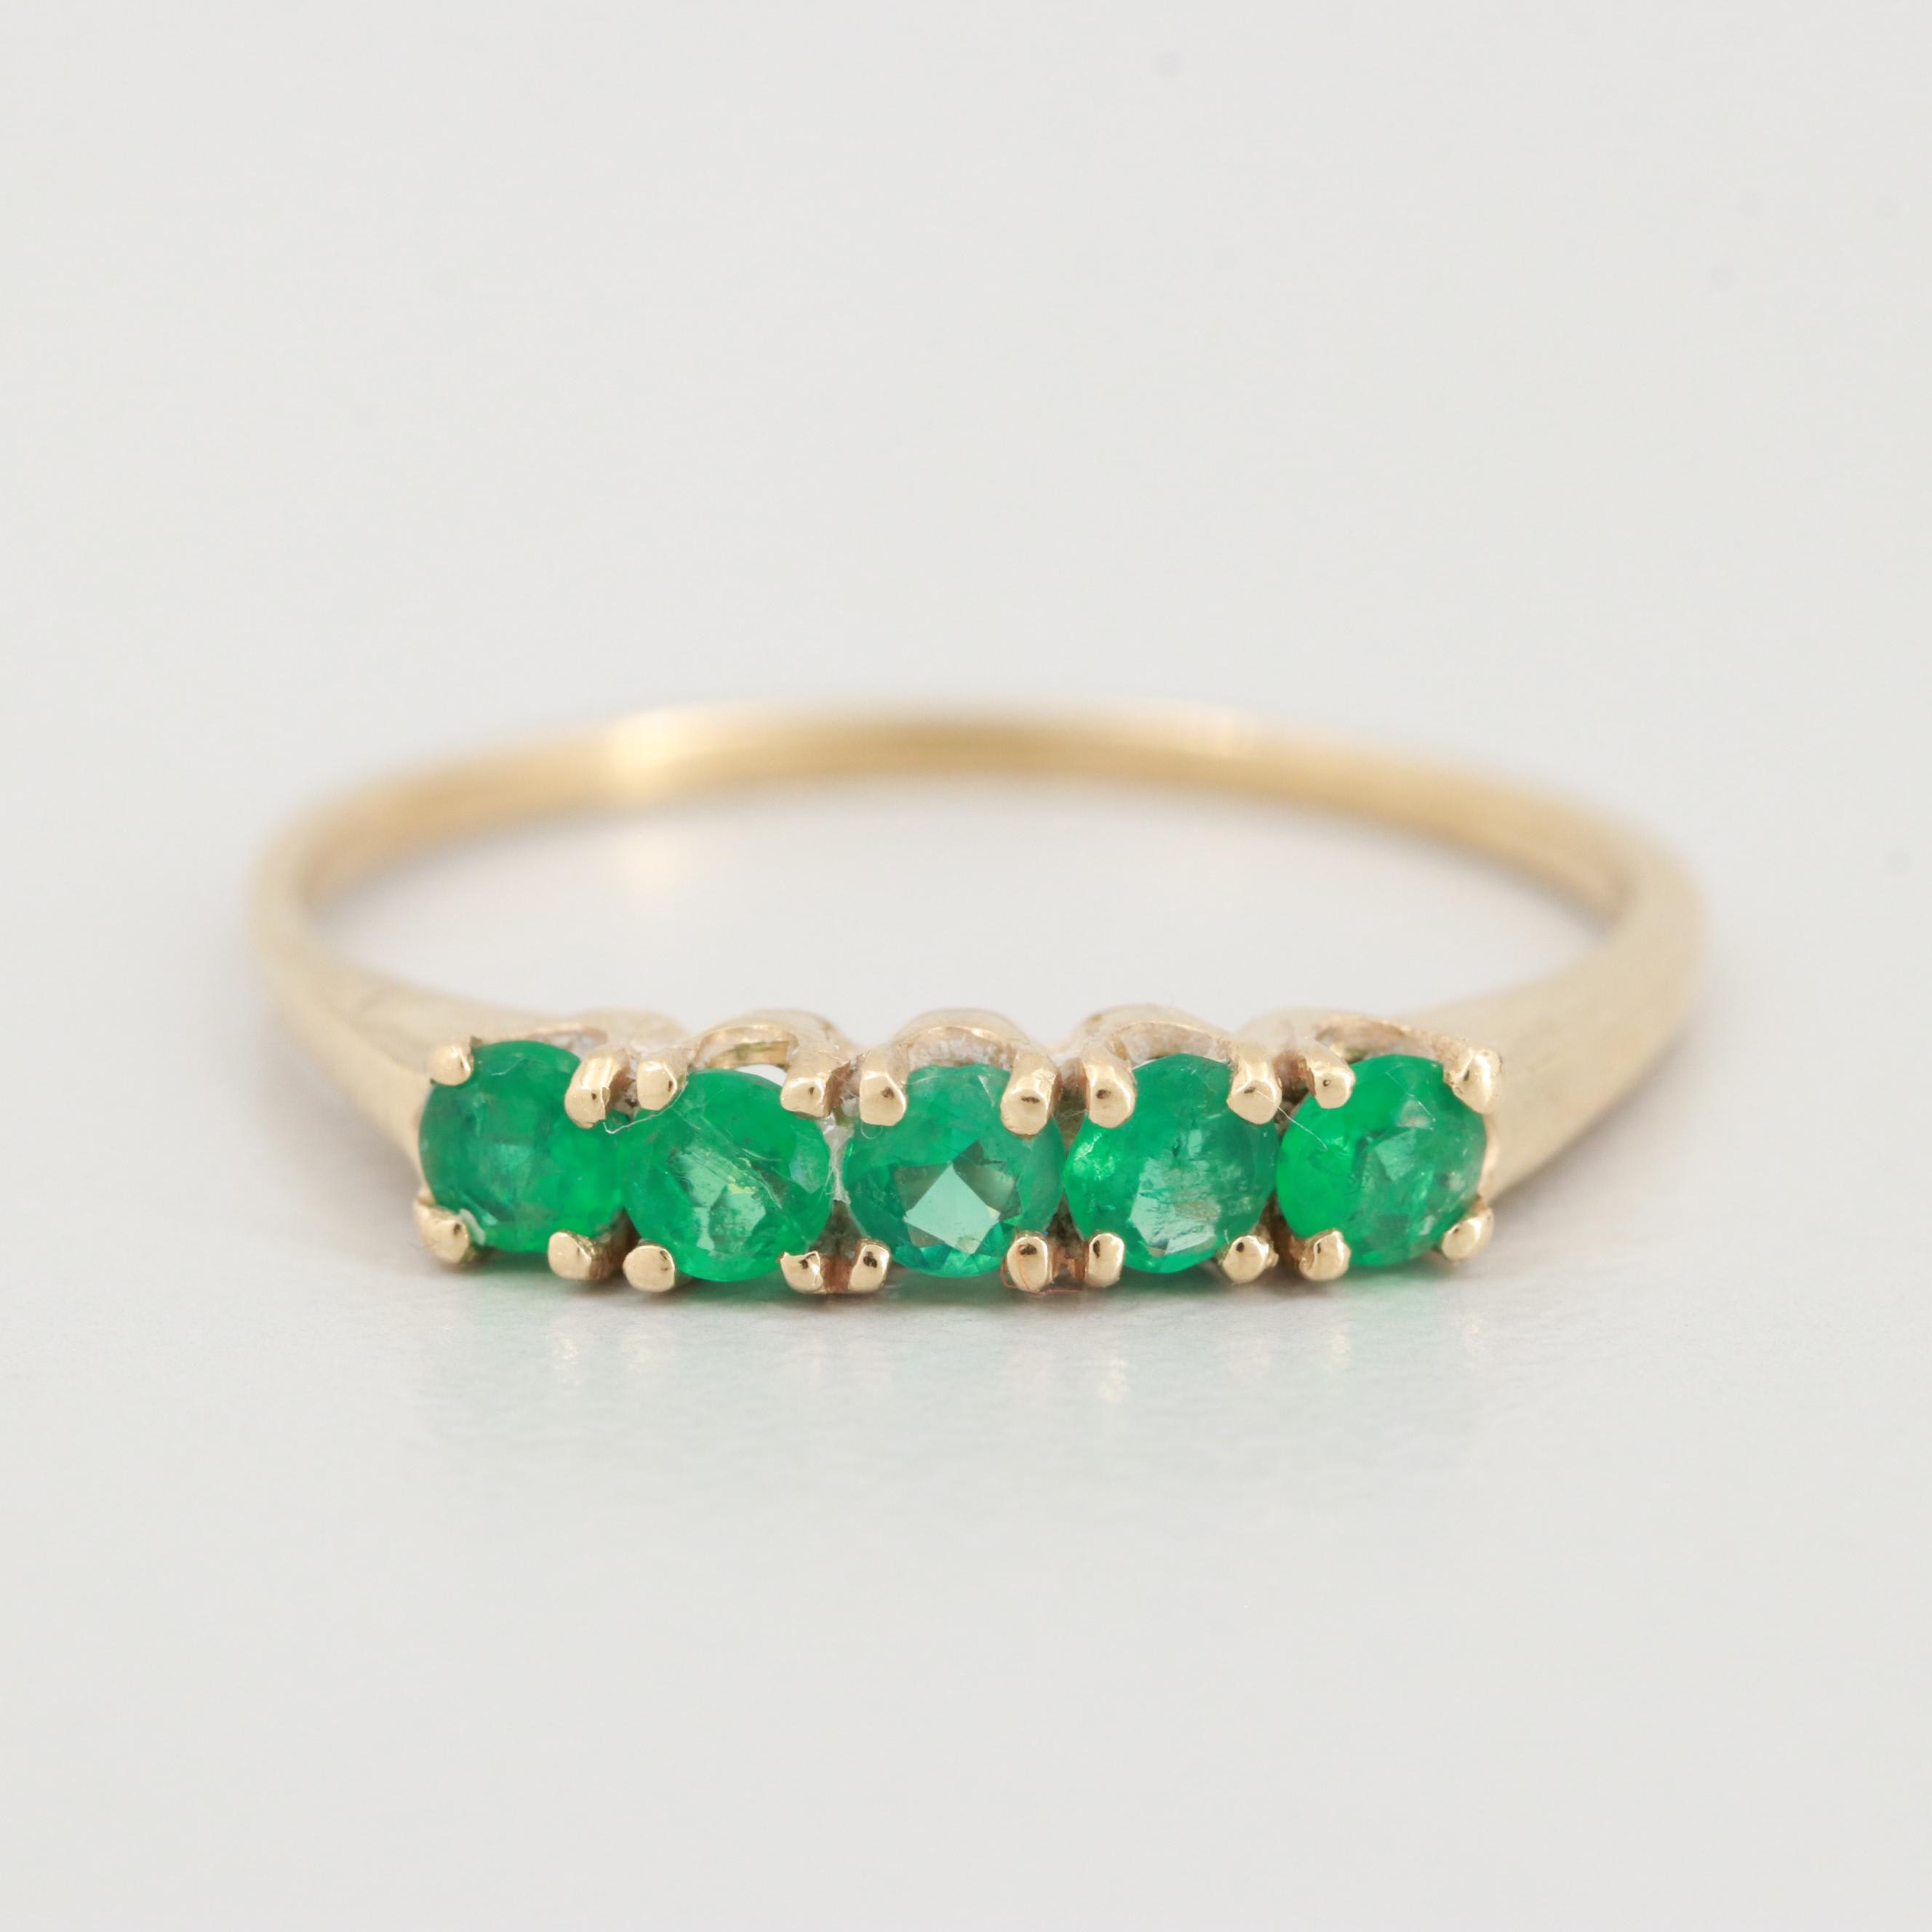 18K Yellow Gold Emerald Ring